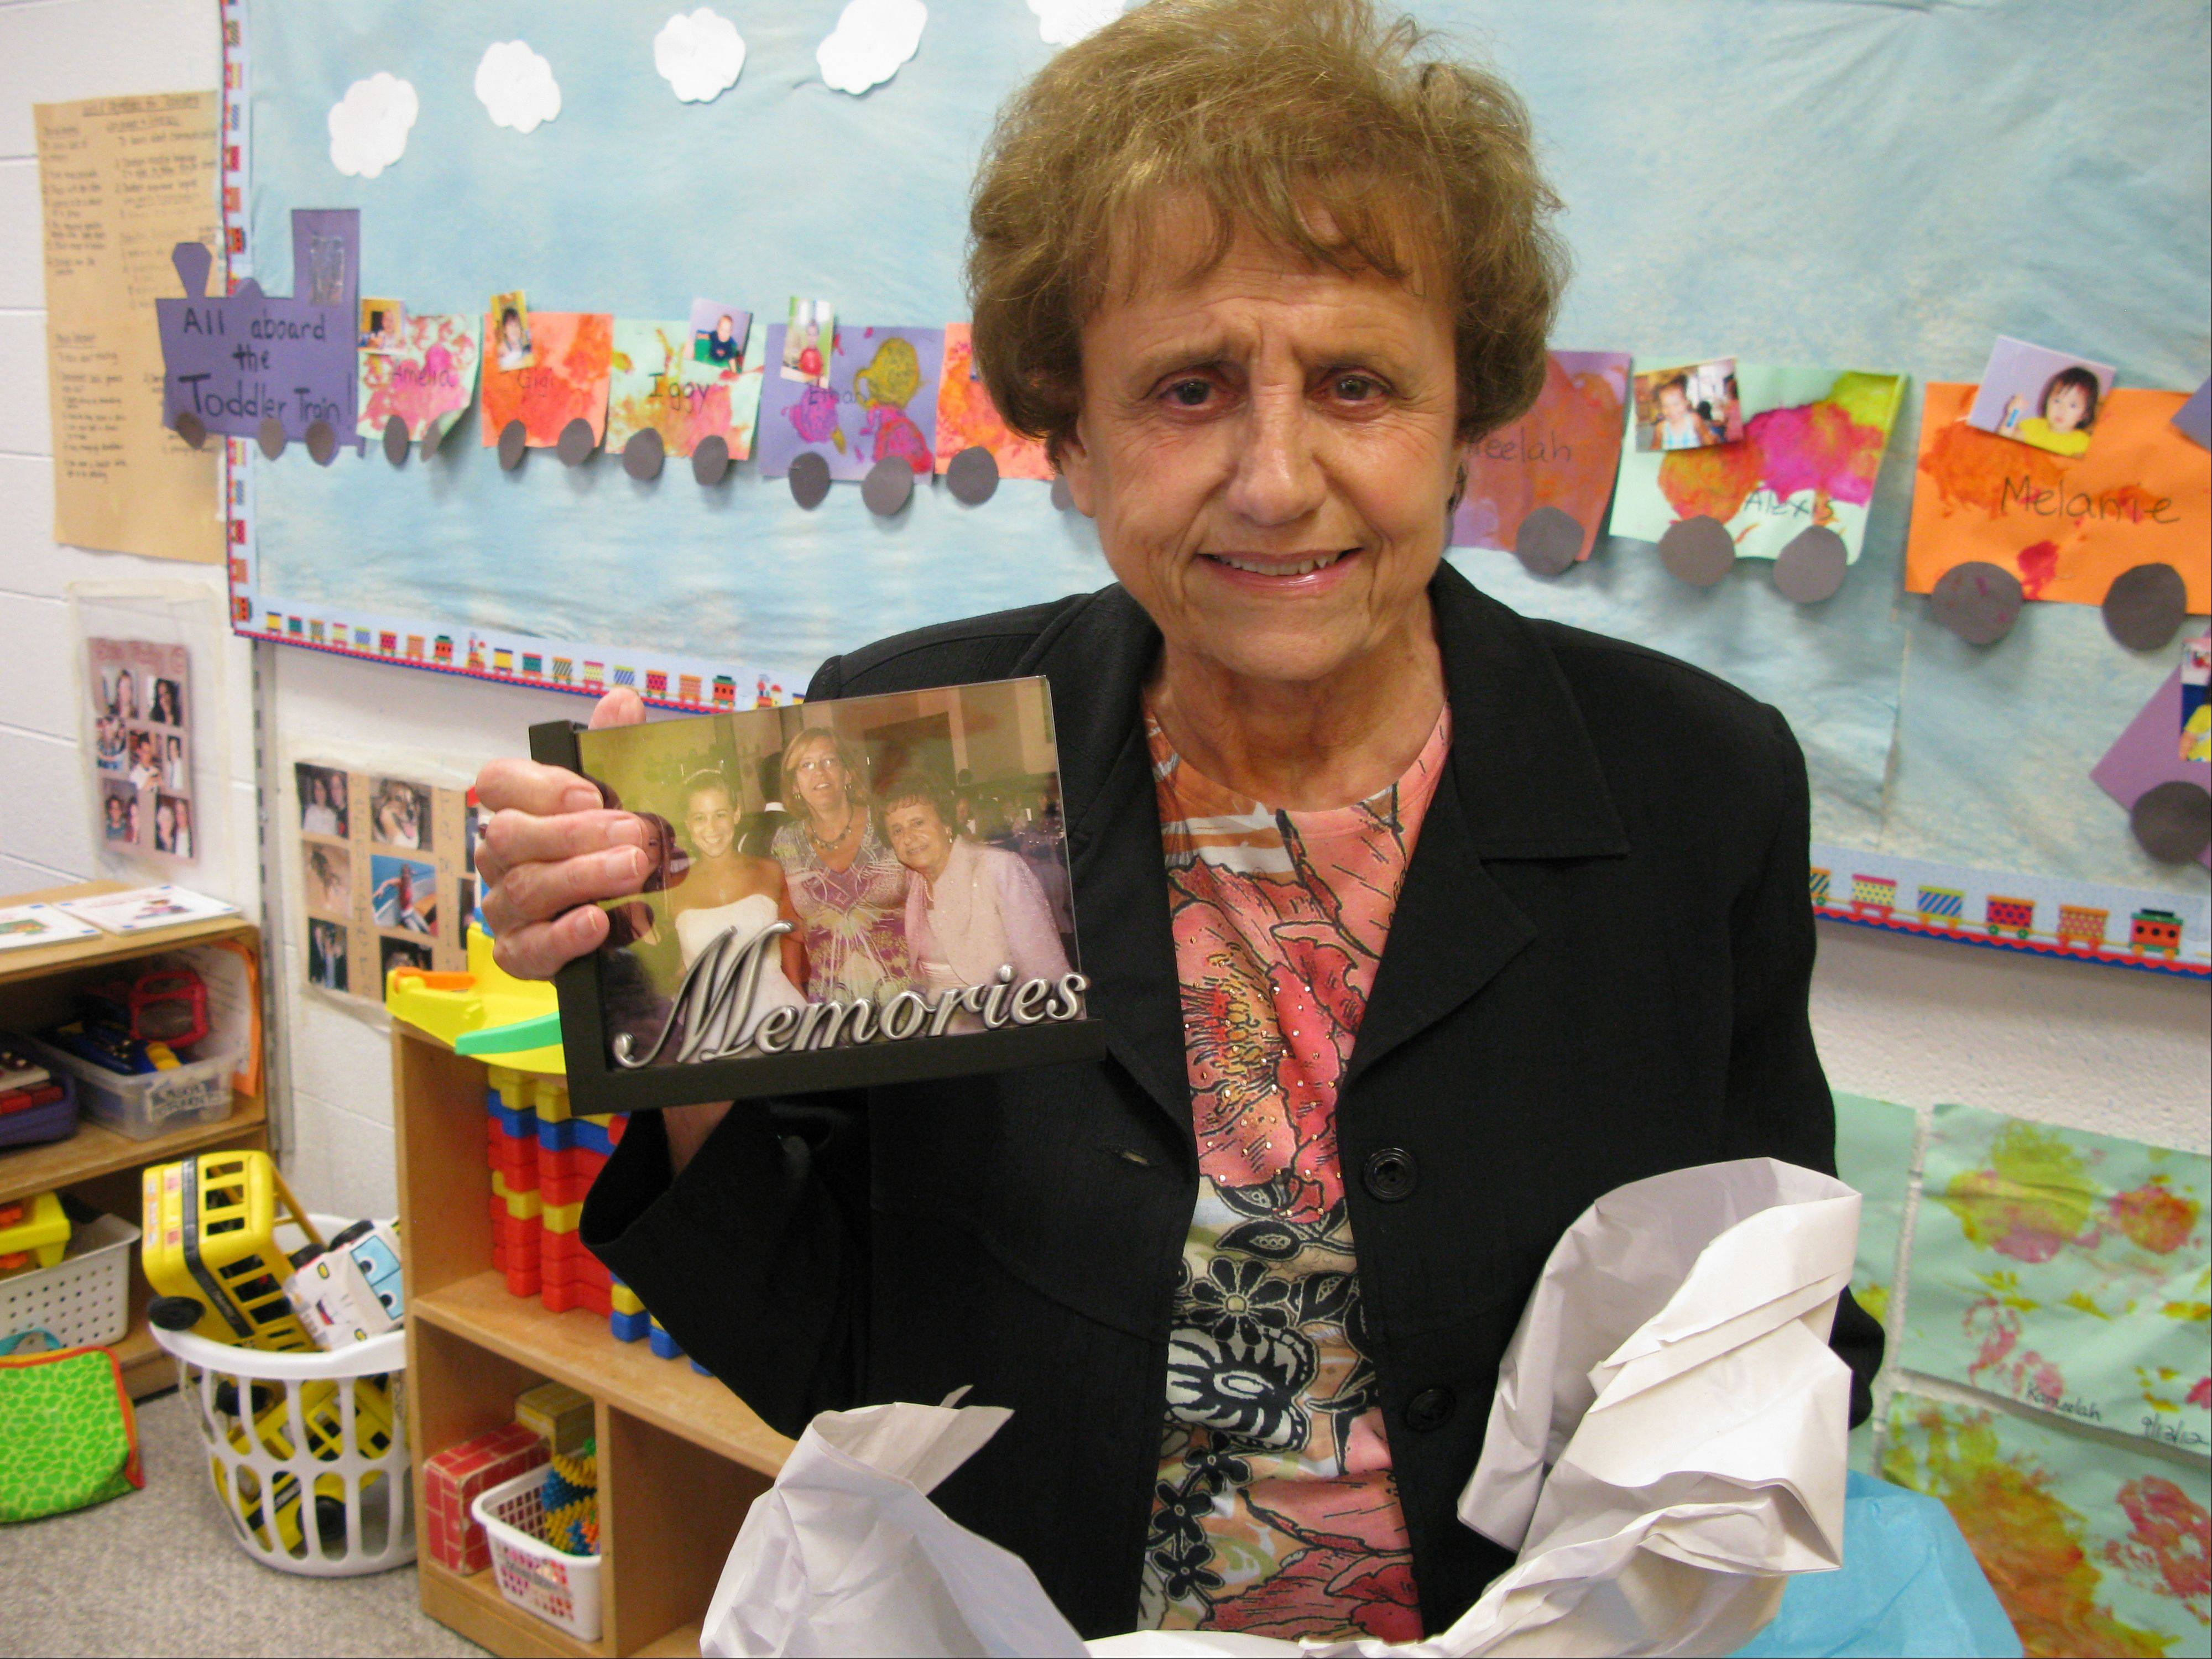 Marie Handley, 88, holds up a keepsake photograph gifted by co-workers upon her retirement Wednesday after working 26 years at the Elk Grove Township Community Day Care Center.